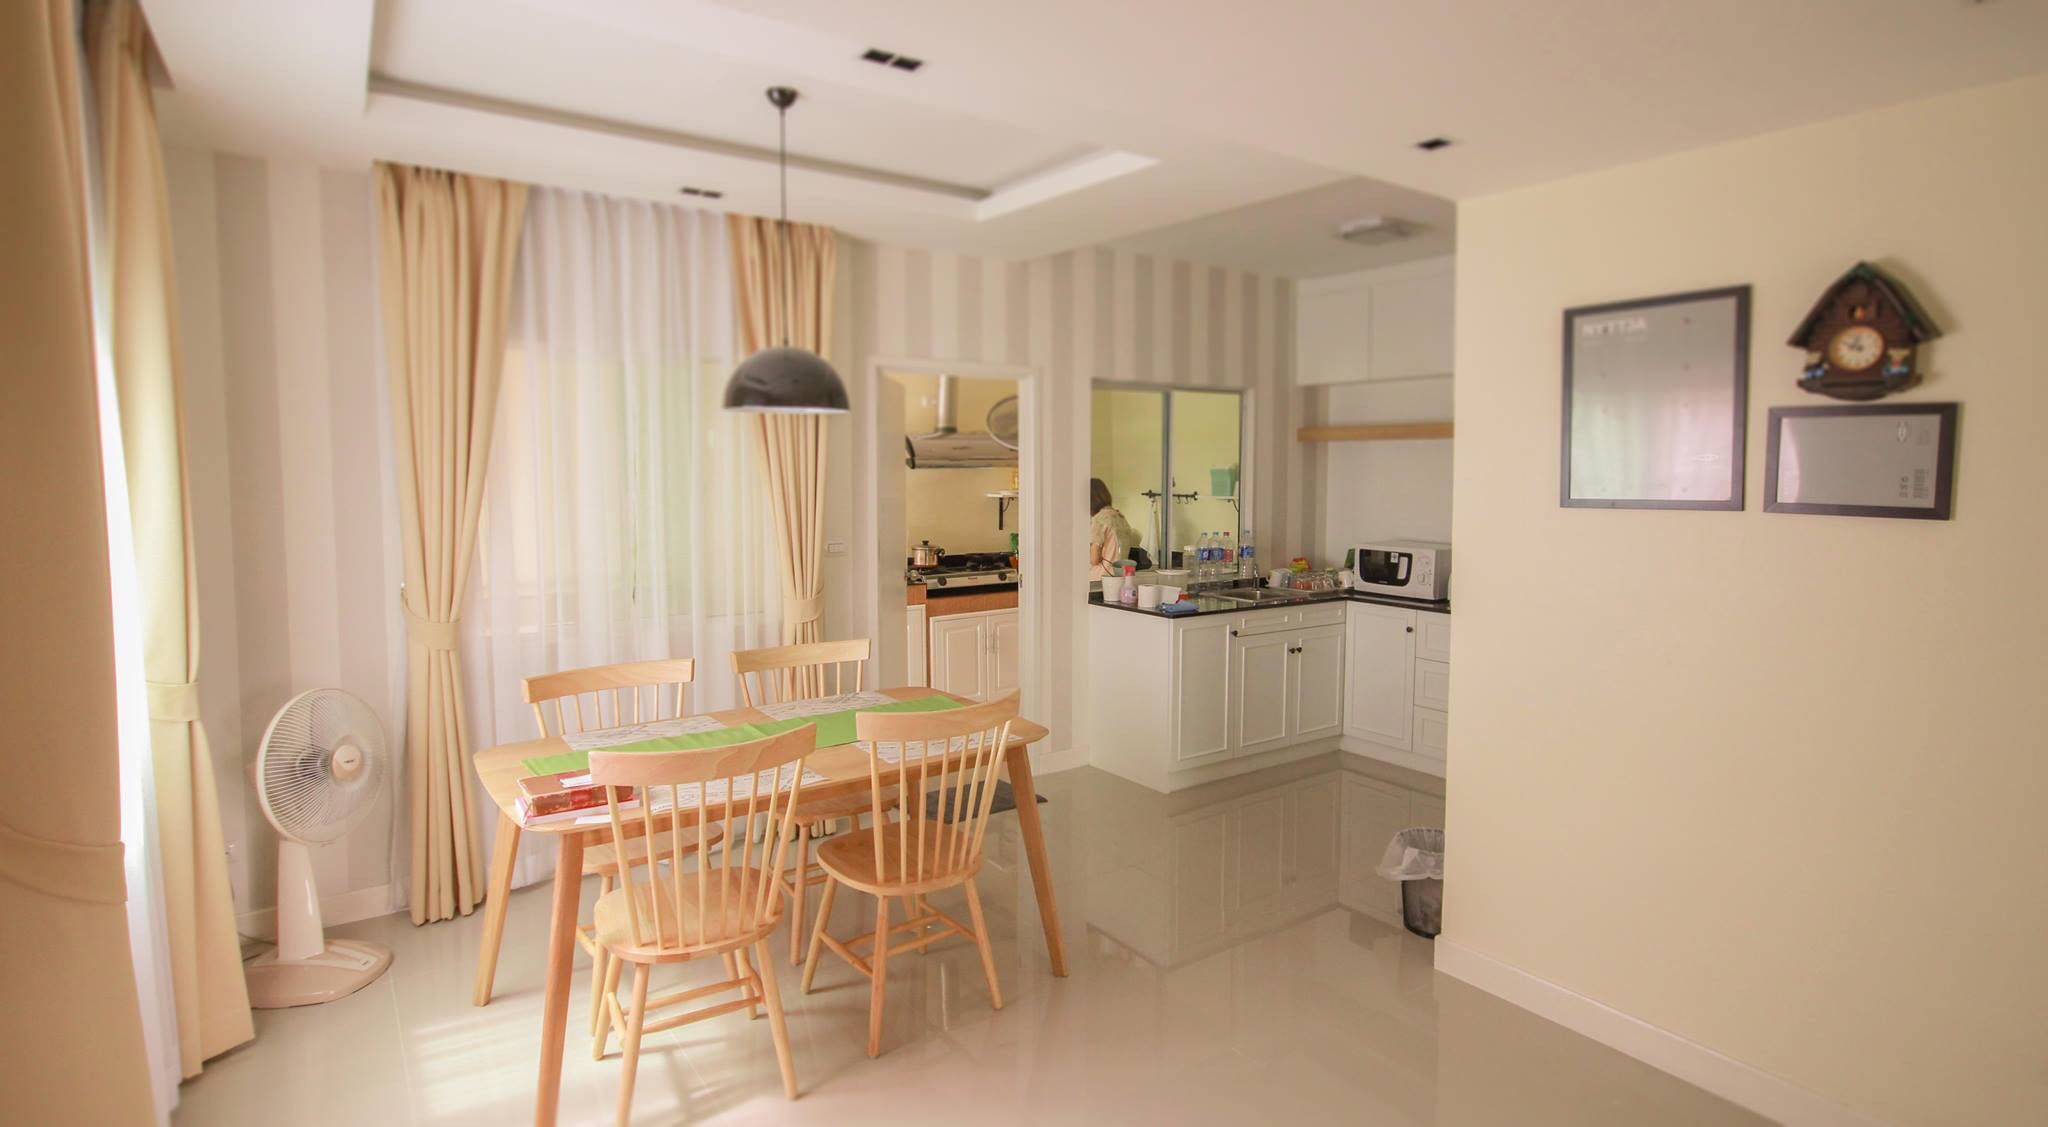 cr review ep2 cr review ep2 pantip home pinterest